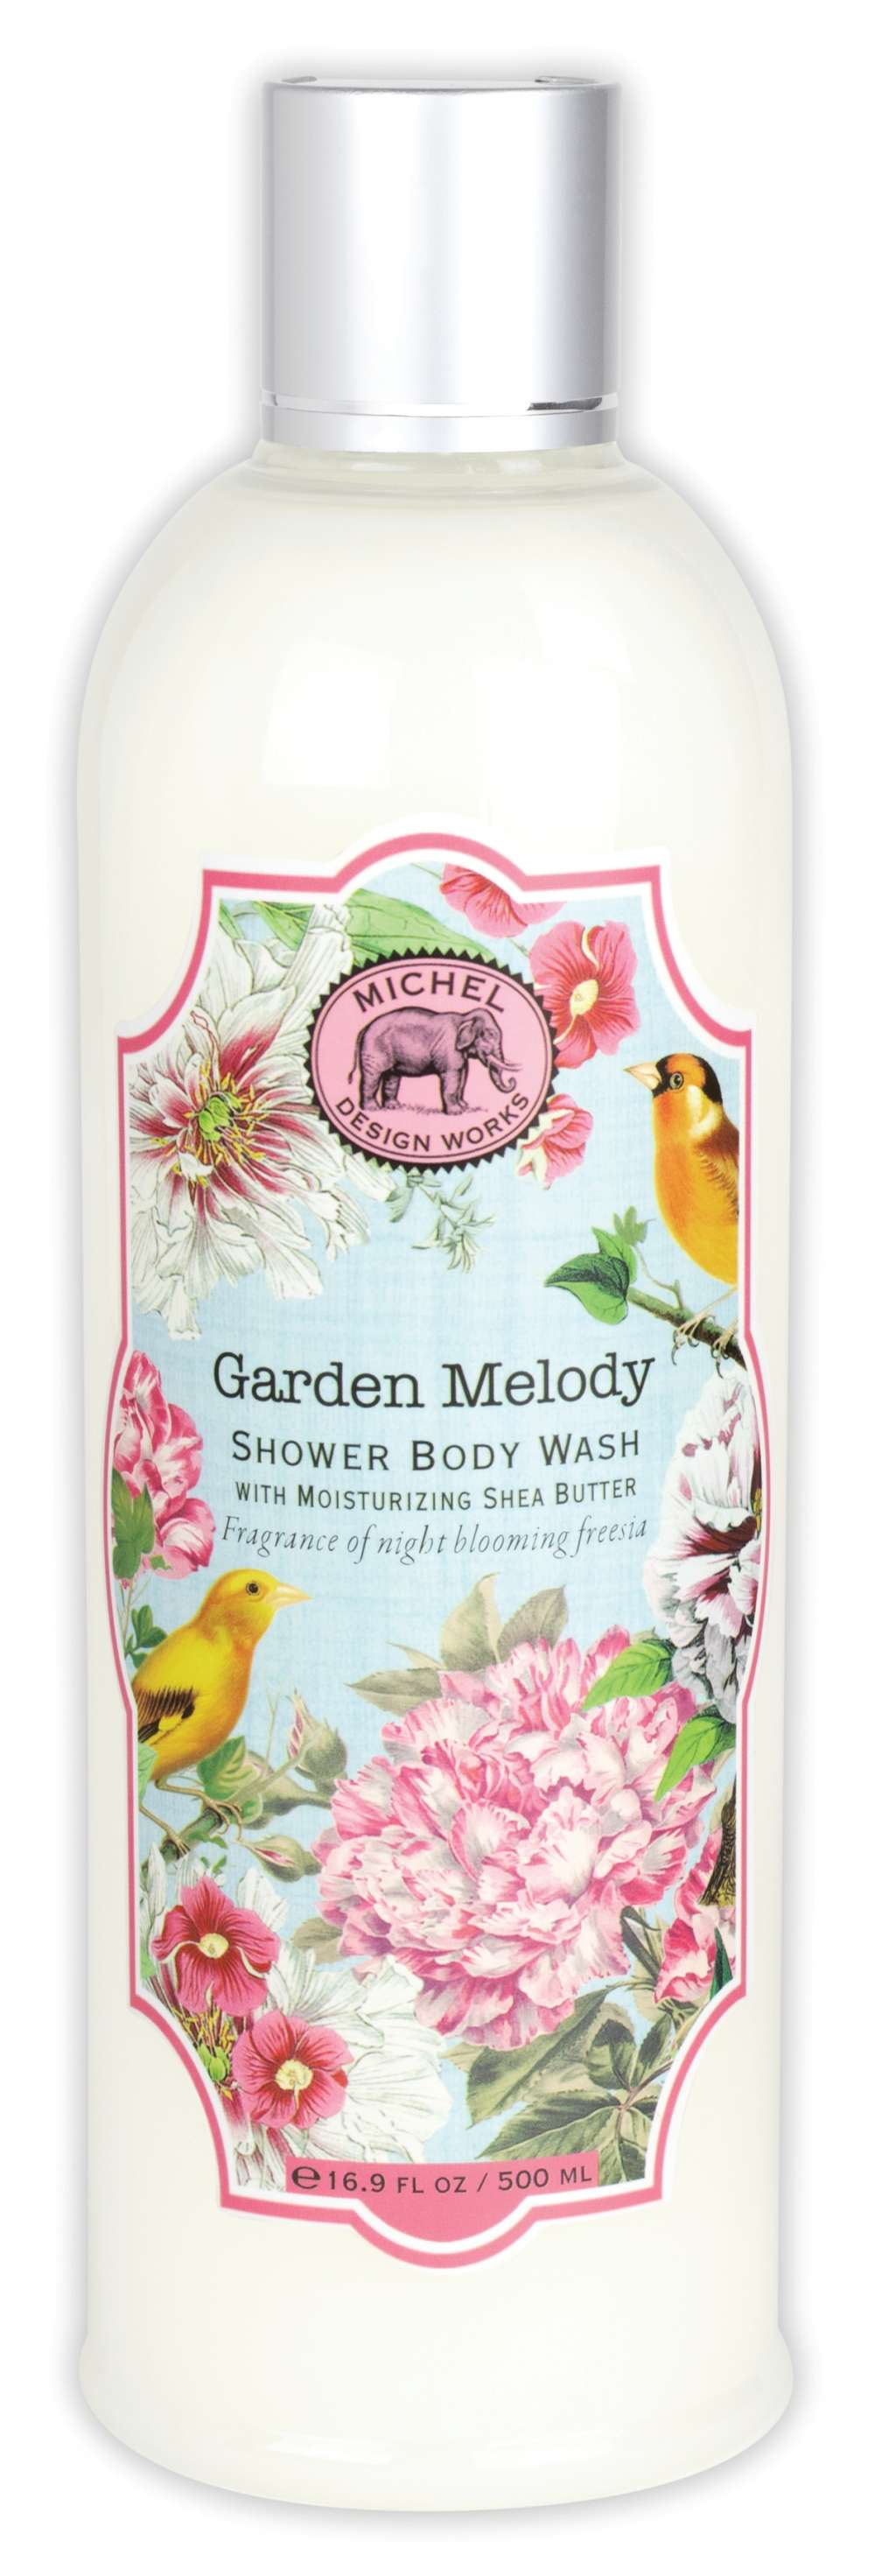 Garden Melody Shower Body Wash